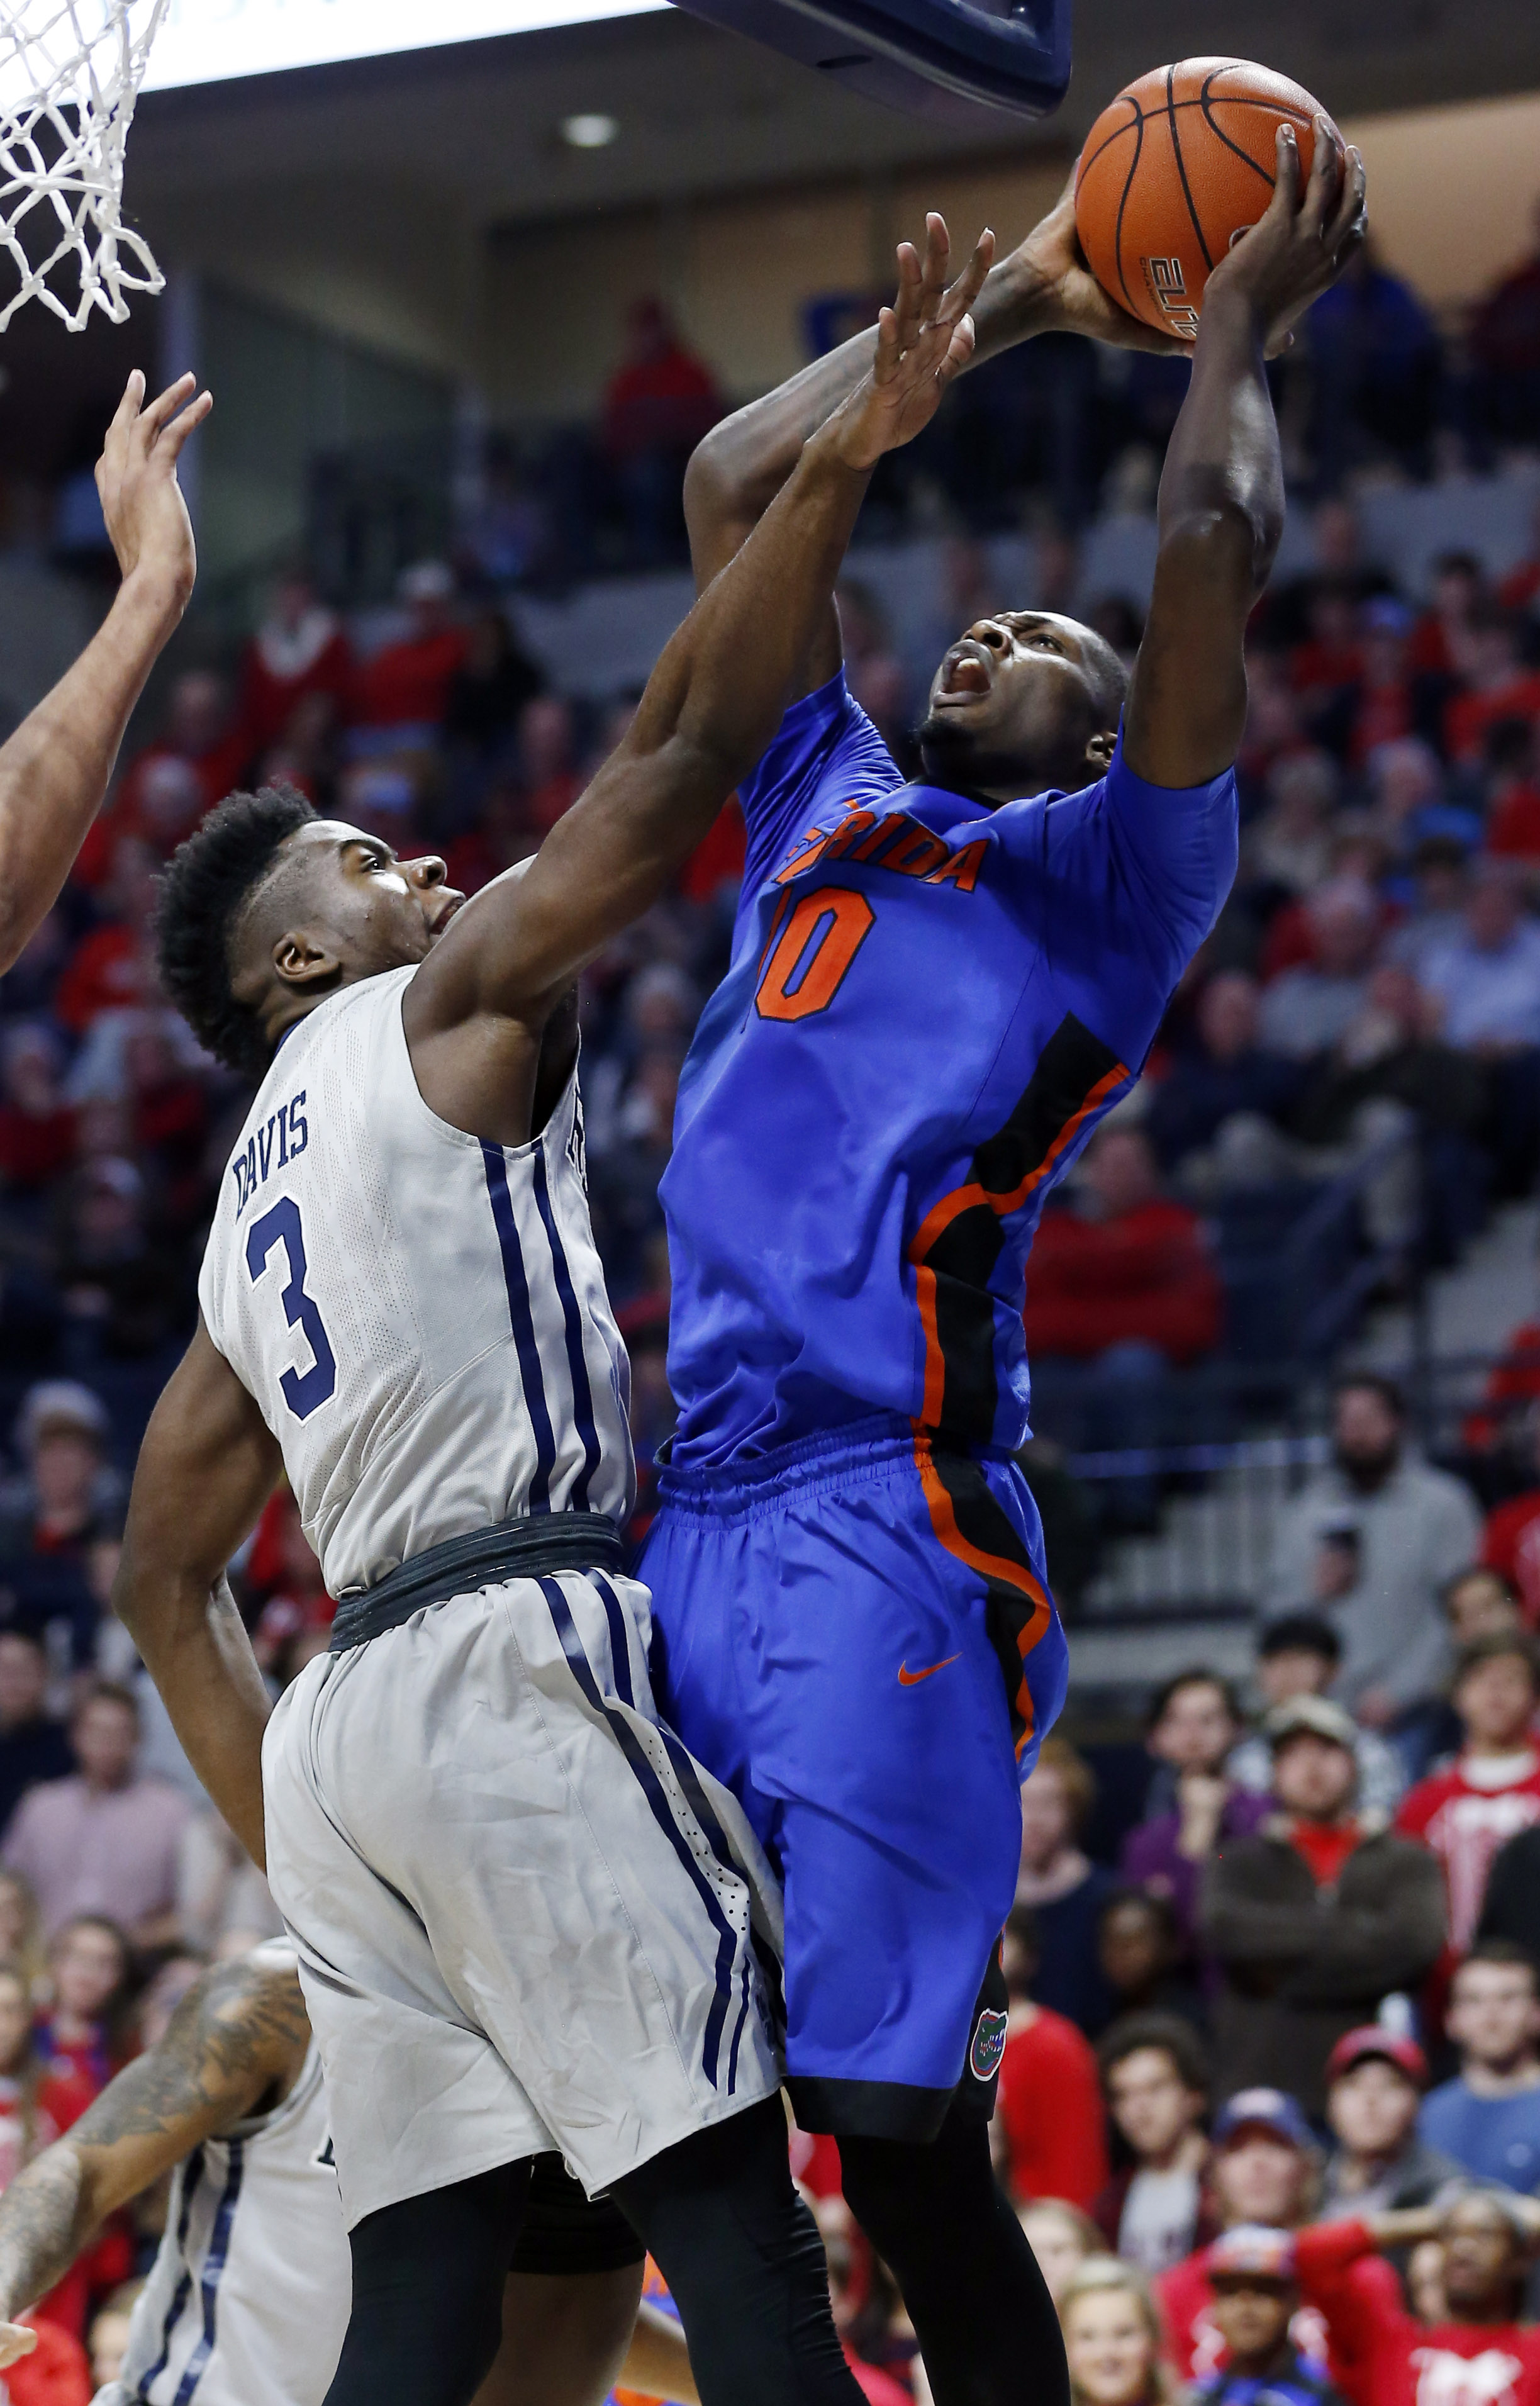 Florida forward Dorian Finney-Smith (10) attempts a shot at the basket past the defense of Mississippi guard Terence Davis (3) in the second half of an NCAA college basketball game in Oxford, Miss., Saturday, Jan. 16, 2016. Florida won 80-71. (AP Photo/Ro